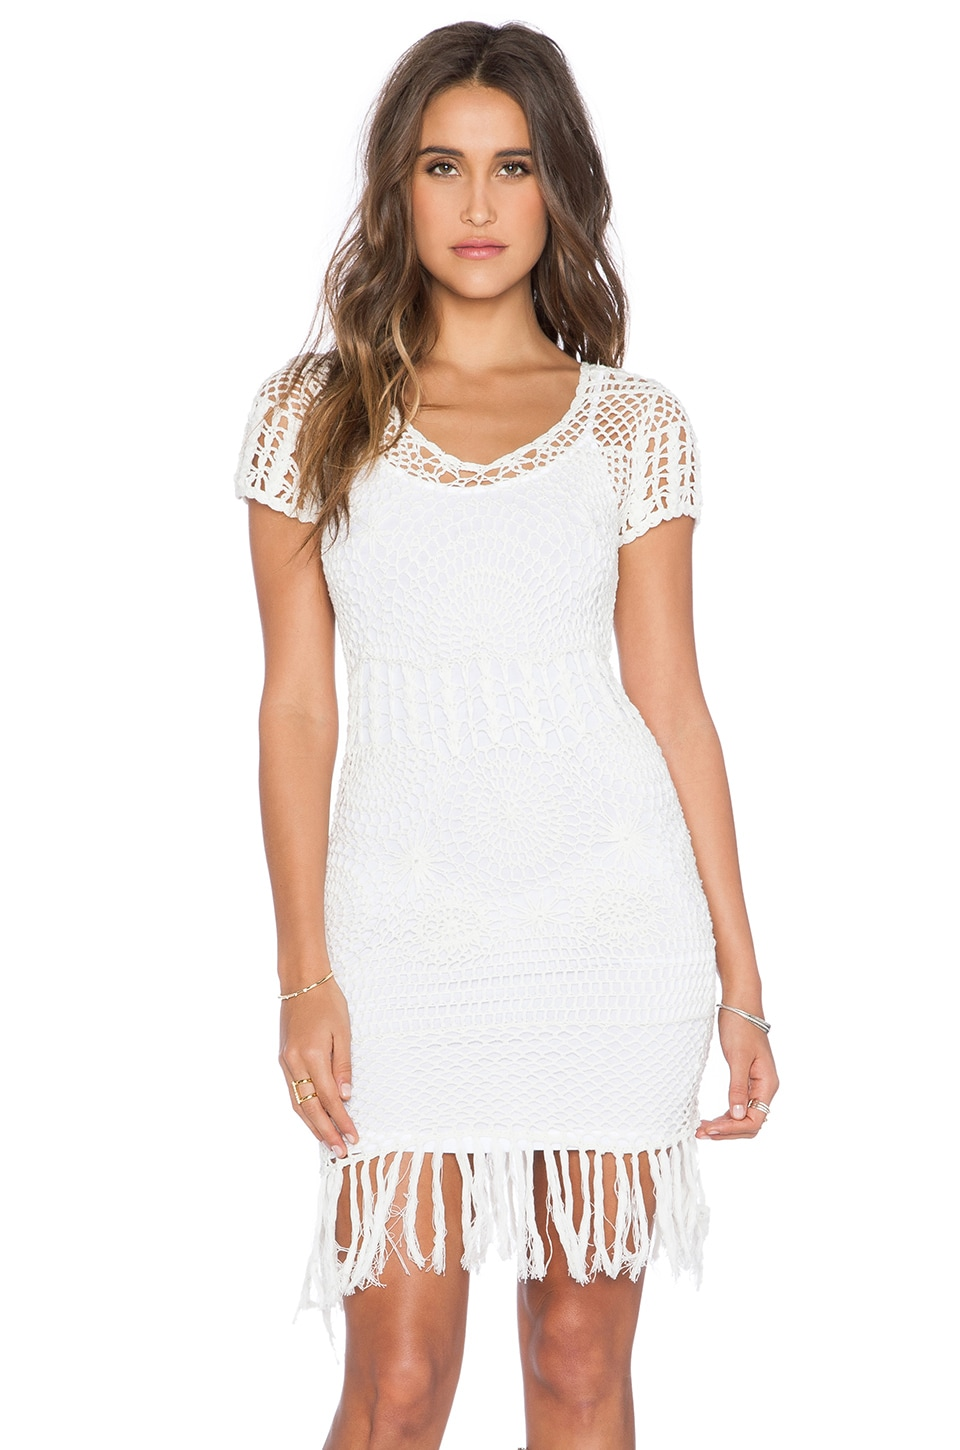 Cleobella Daisy Mini Dress in Ivory